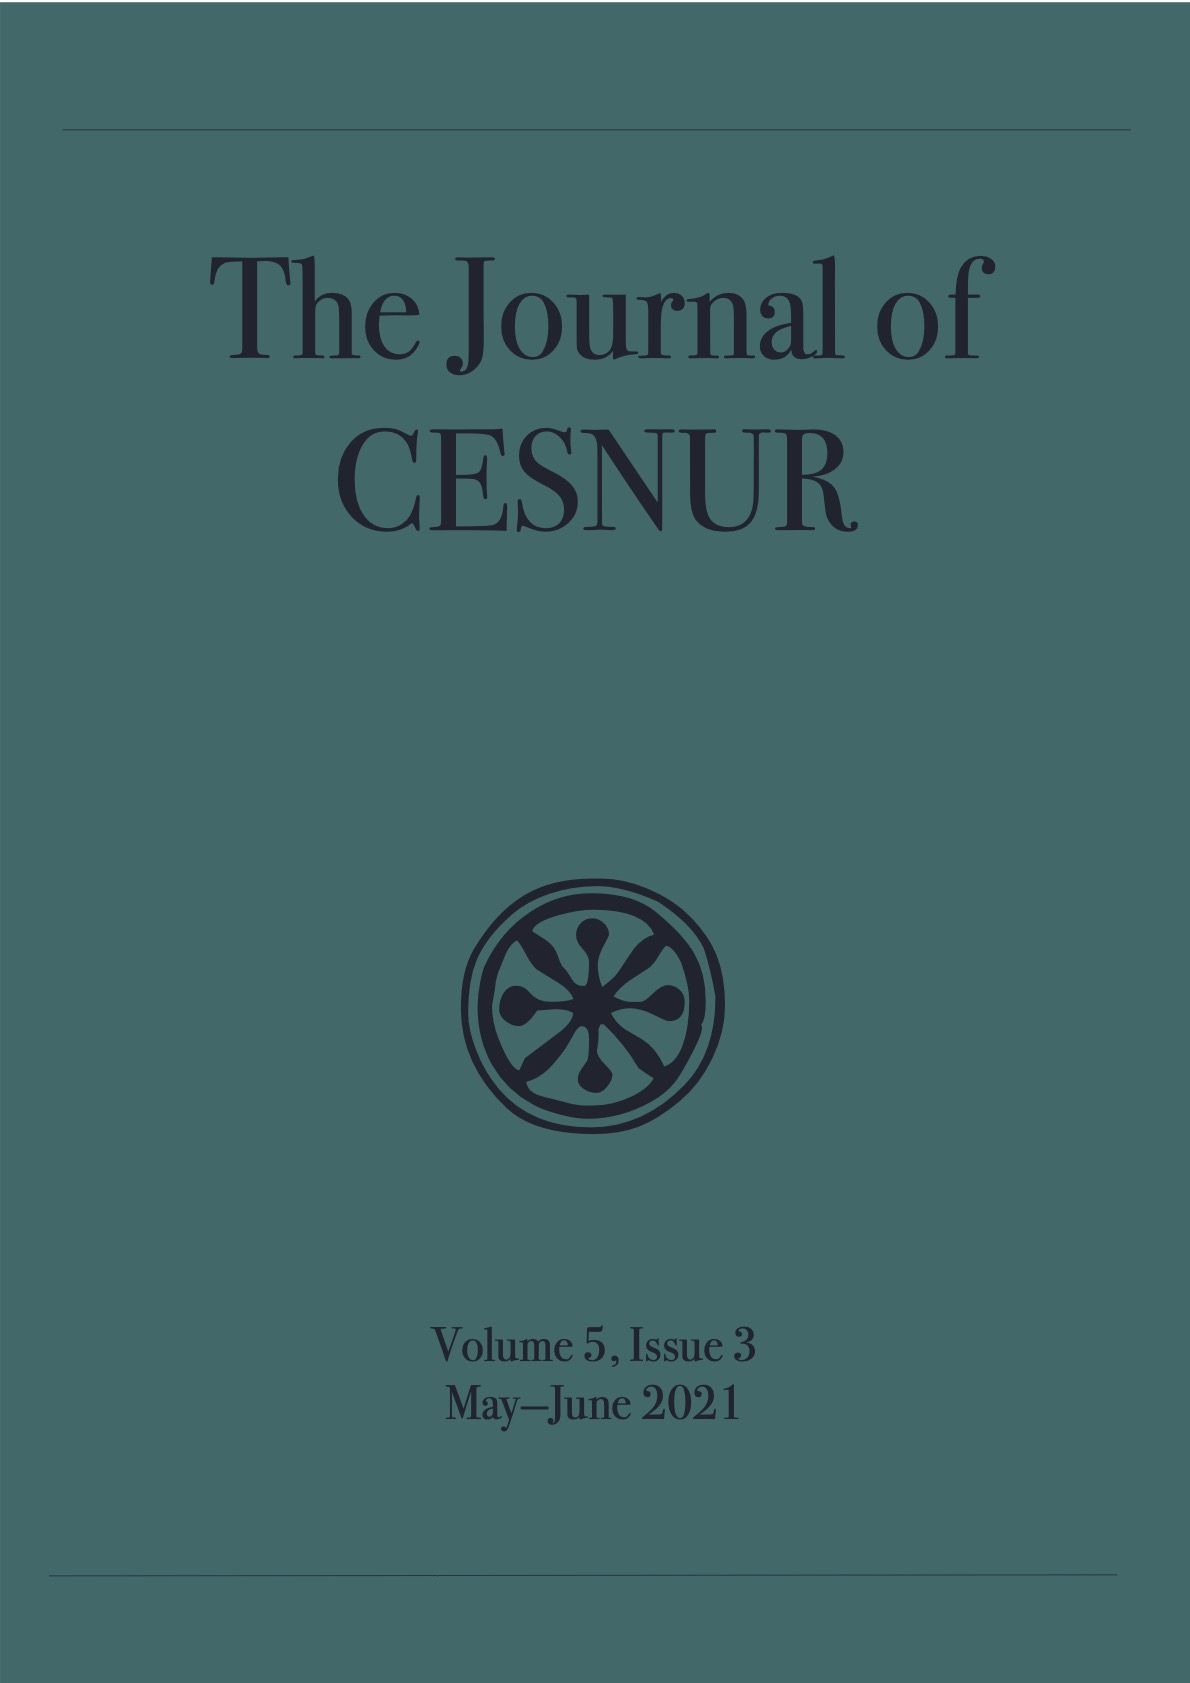 The Journal of Cesnur Volume 5 Issue 3 cover